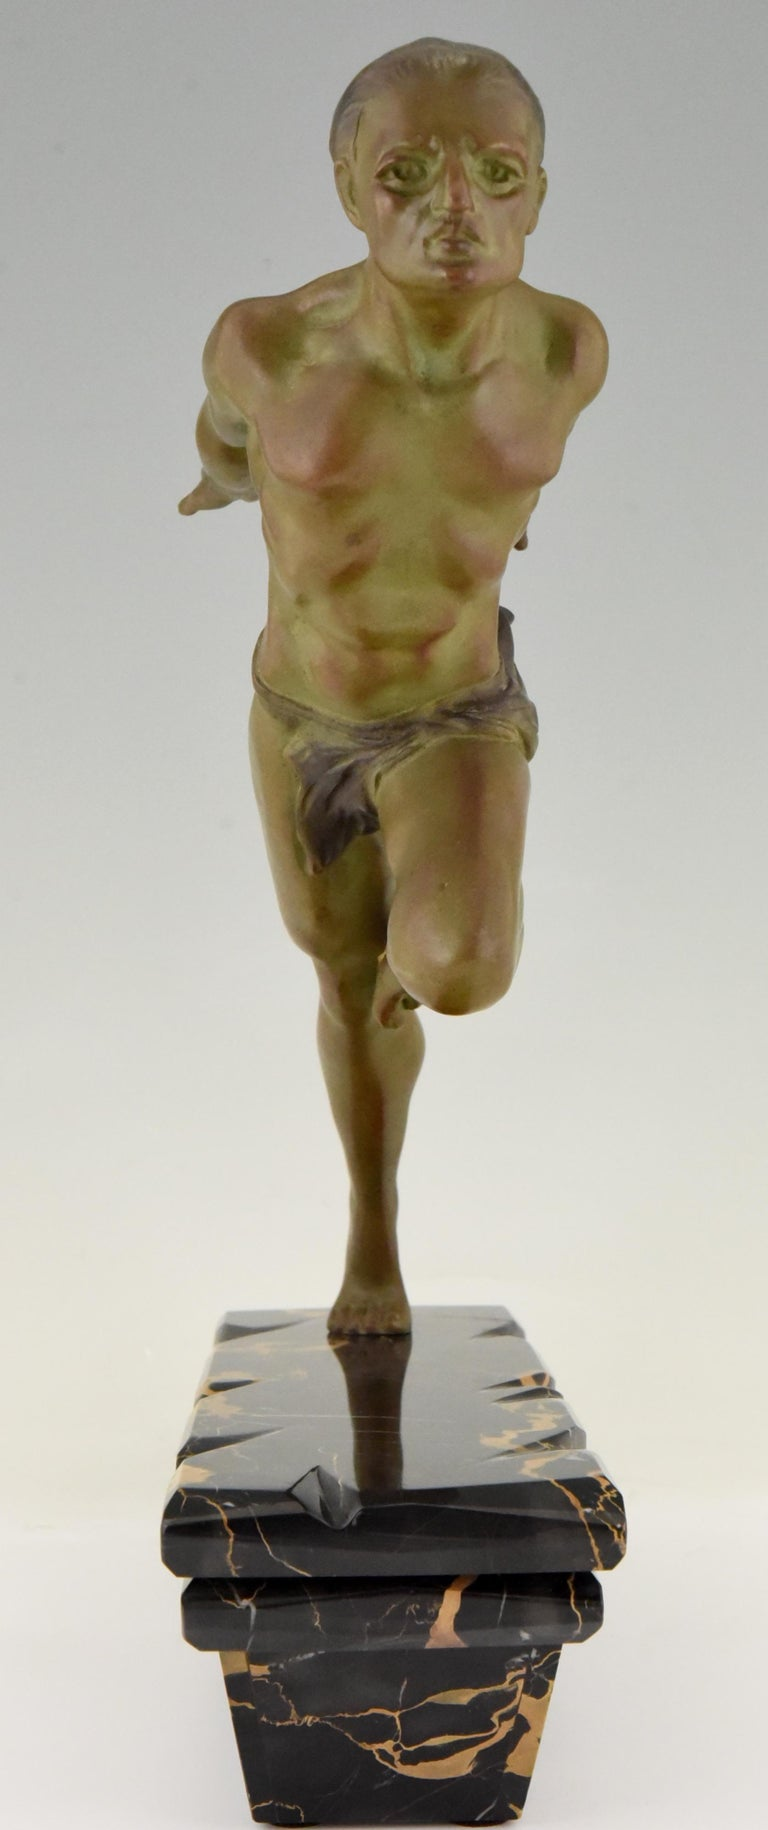 Art Deco Sculpture Running Man or Athlète L. Valderi, France, 1930 In Good Condition For Sale In Antwerp, BE